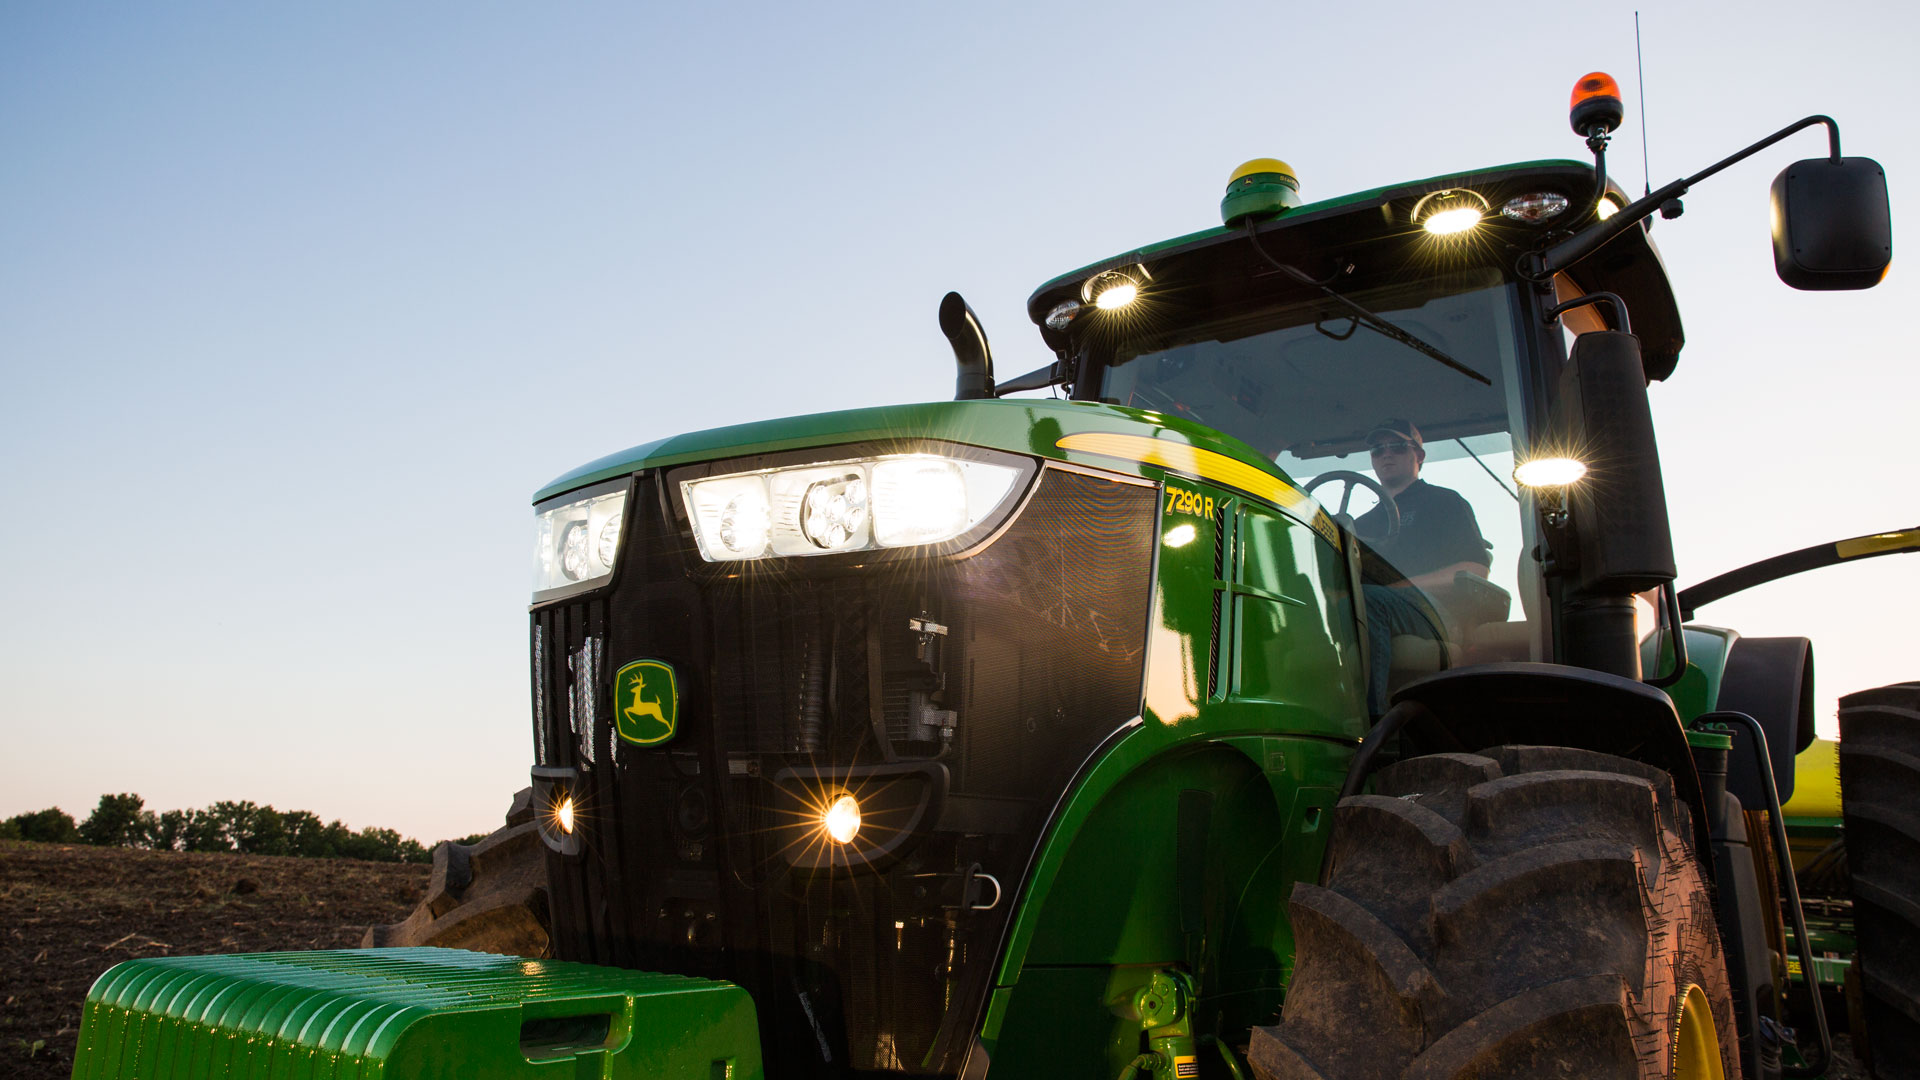 The 7R Series Tractors,